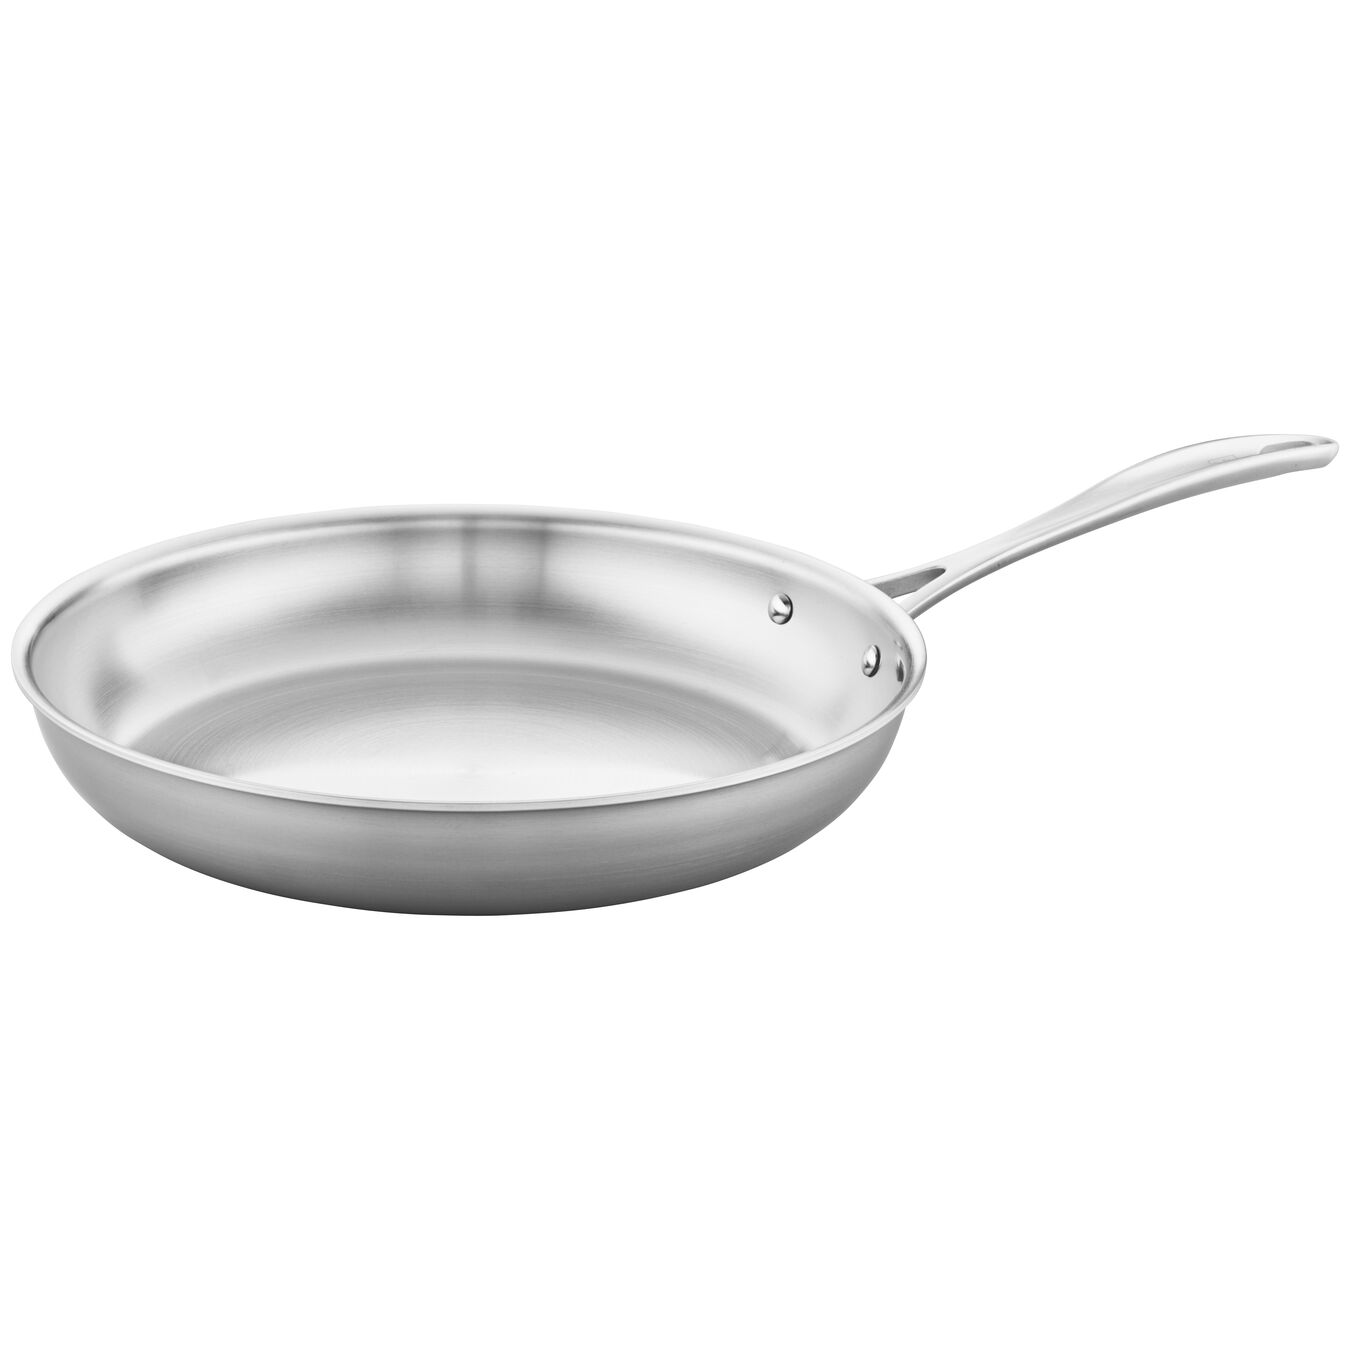 12-inch, 18/10 Stainless Steel, Frying pan,,large 3